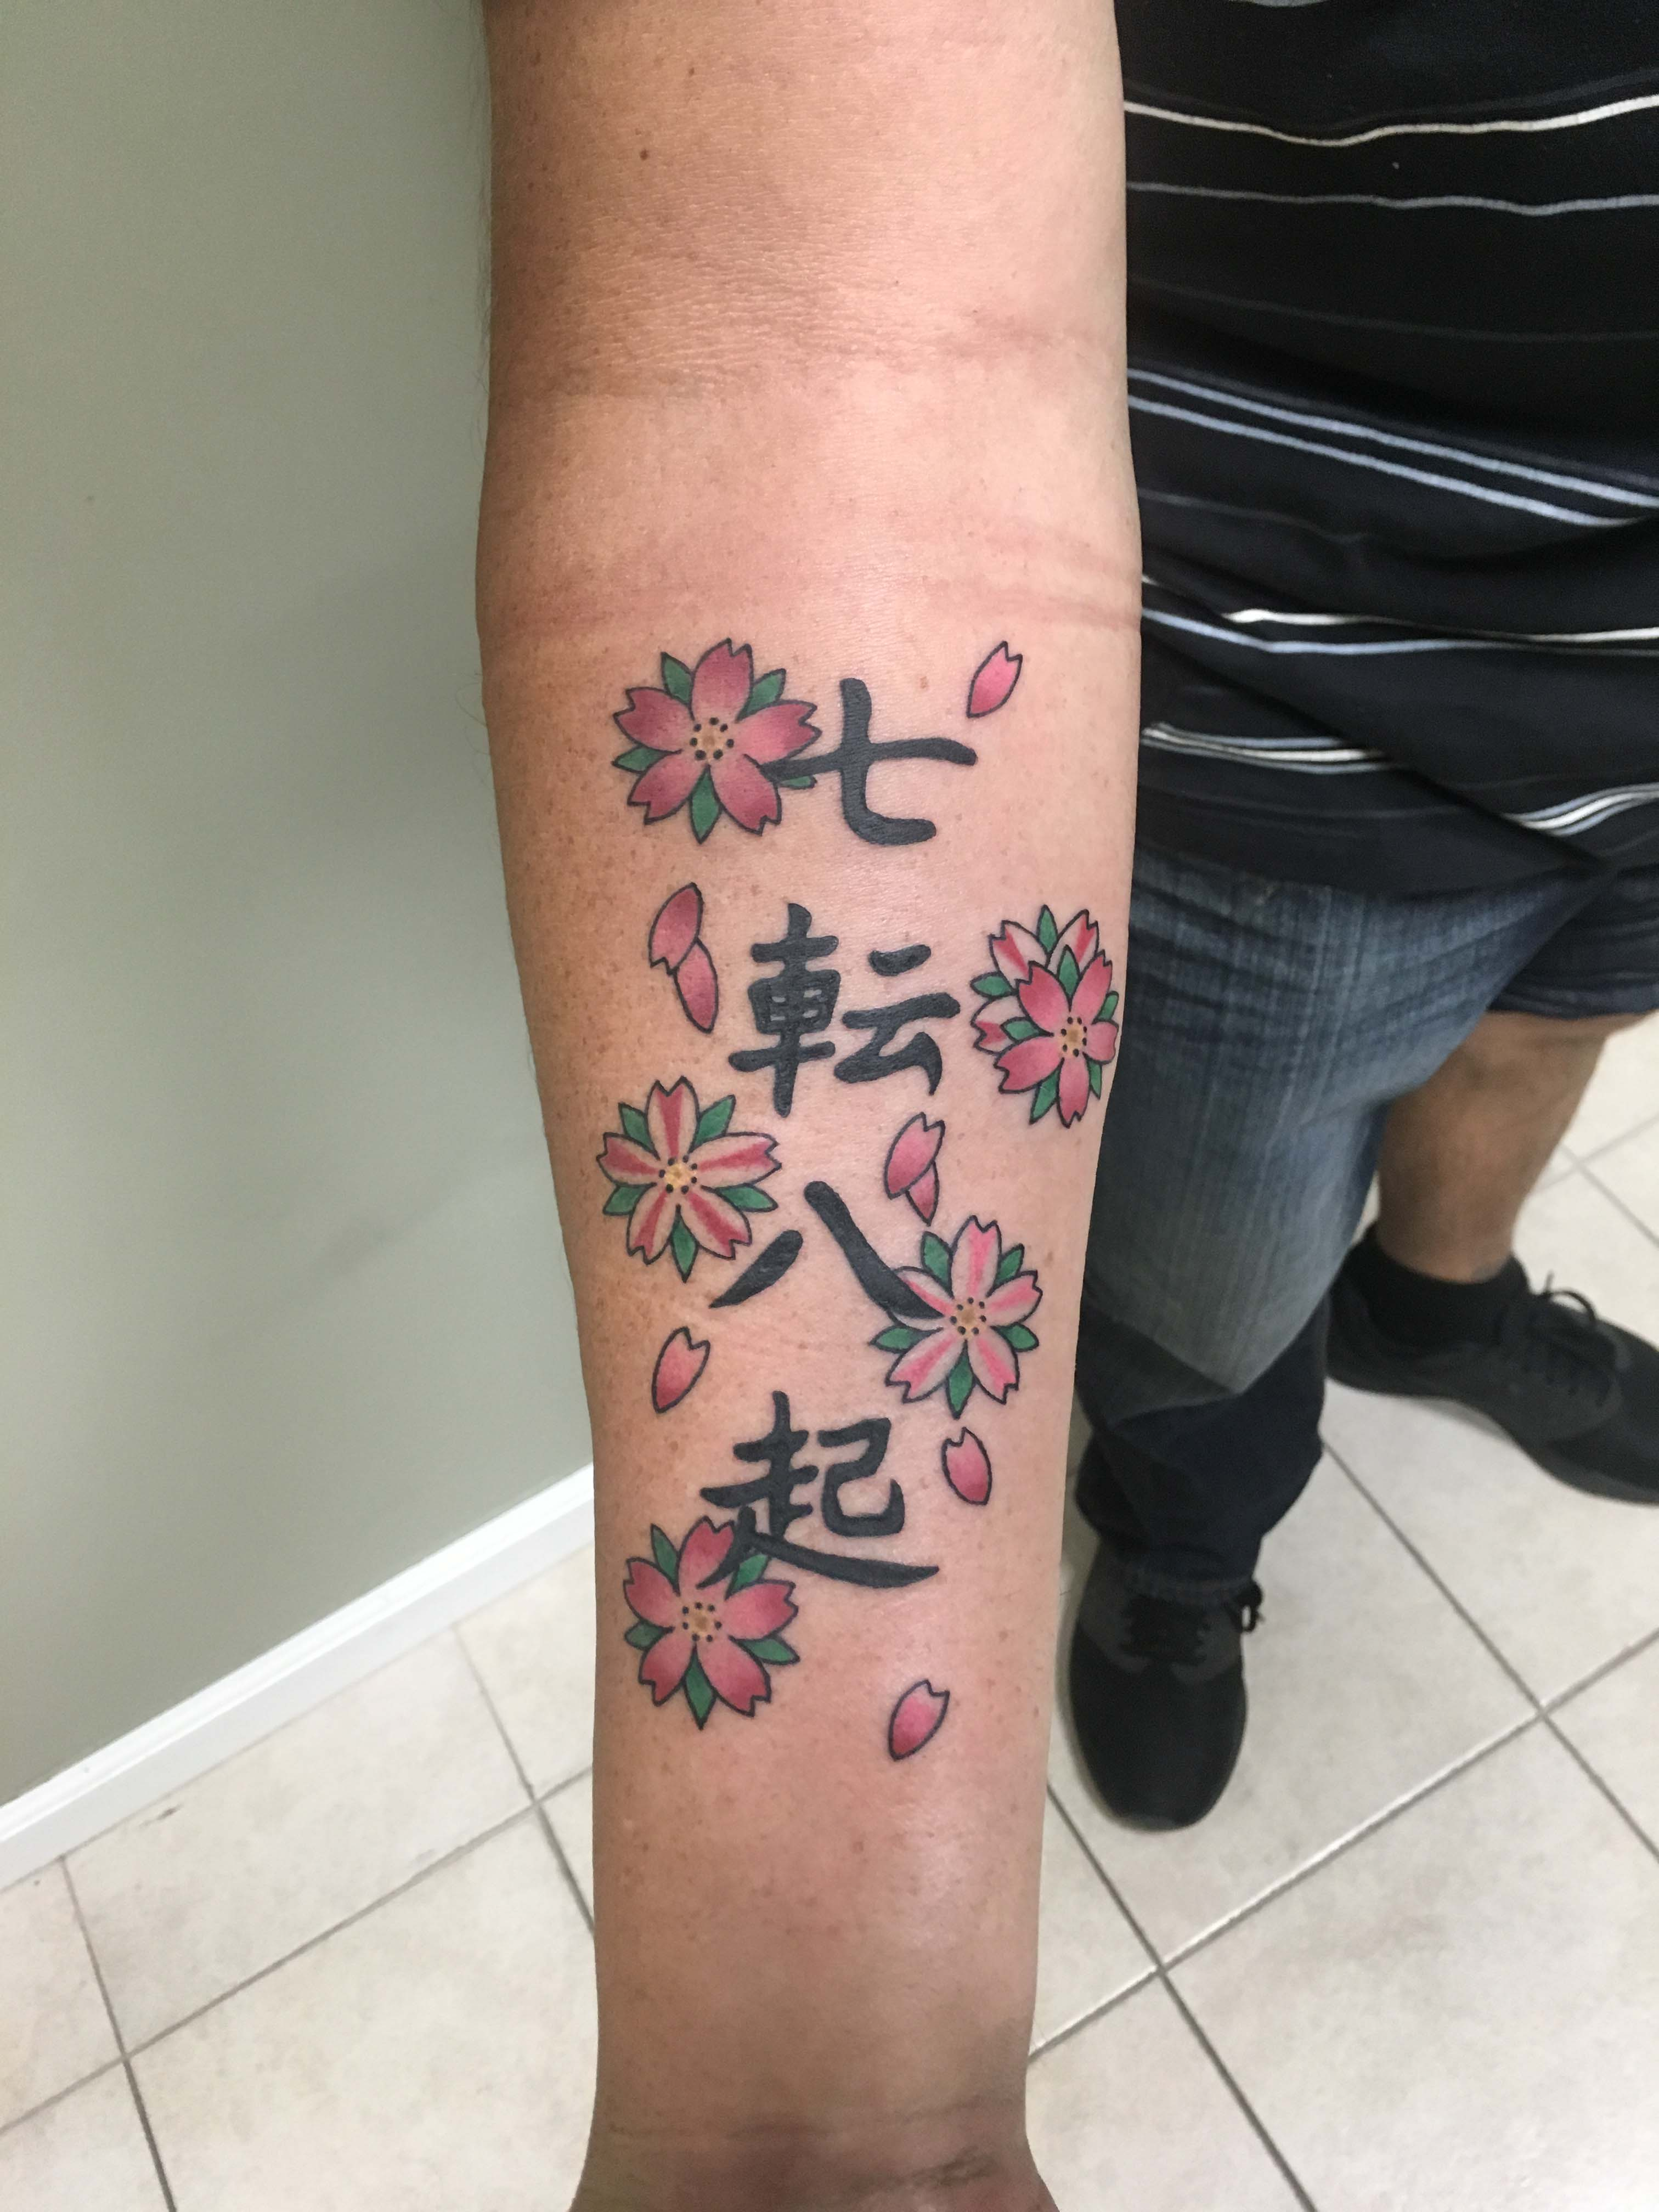 japanese lettering and cherry blossom tattoo by Ei Omiya at Funhouse Tattoo San Diego